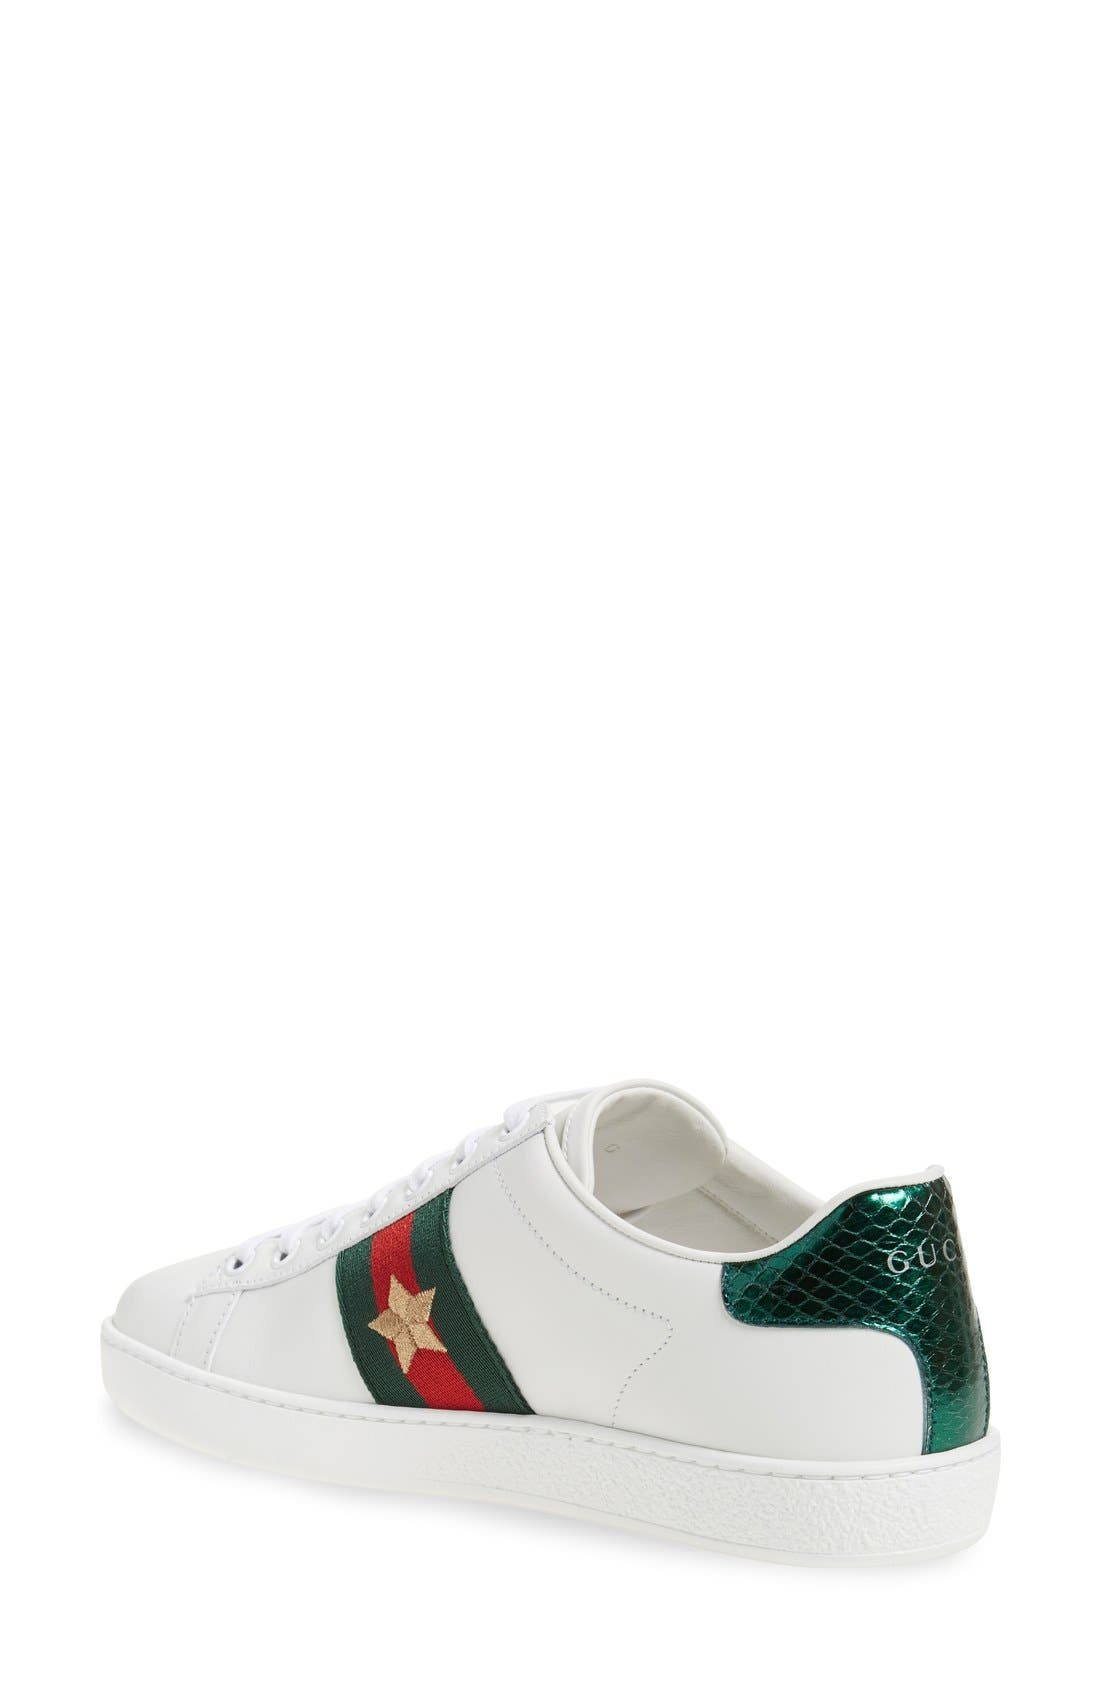 'New Ace' Low Top Sneaker,                             Alternate thumbnail 24, color,